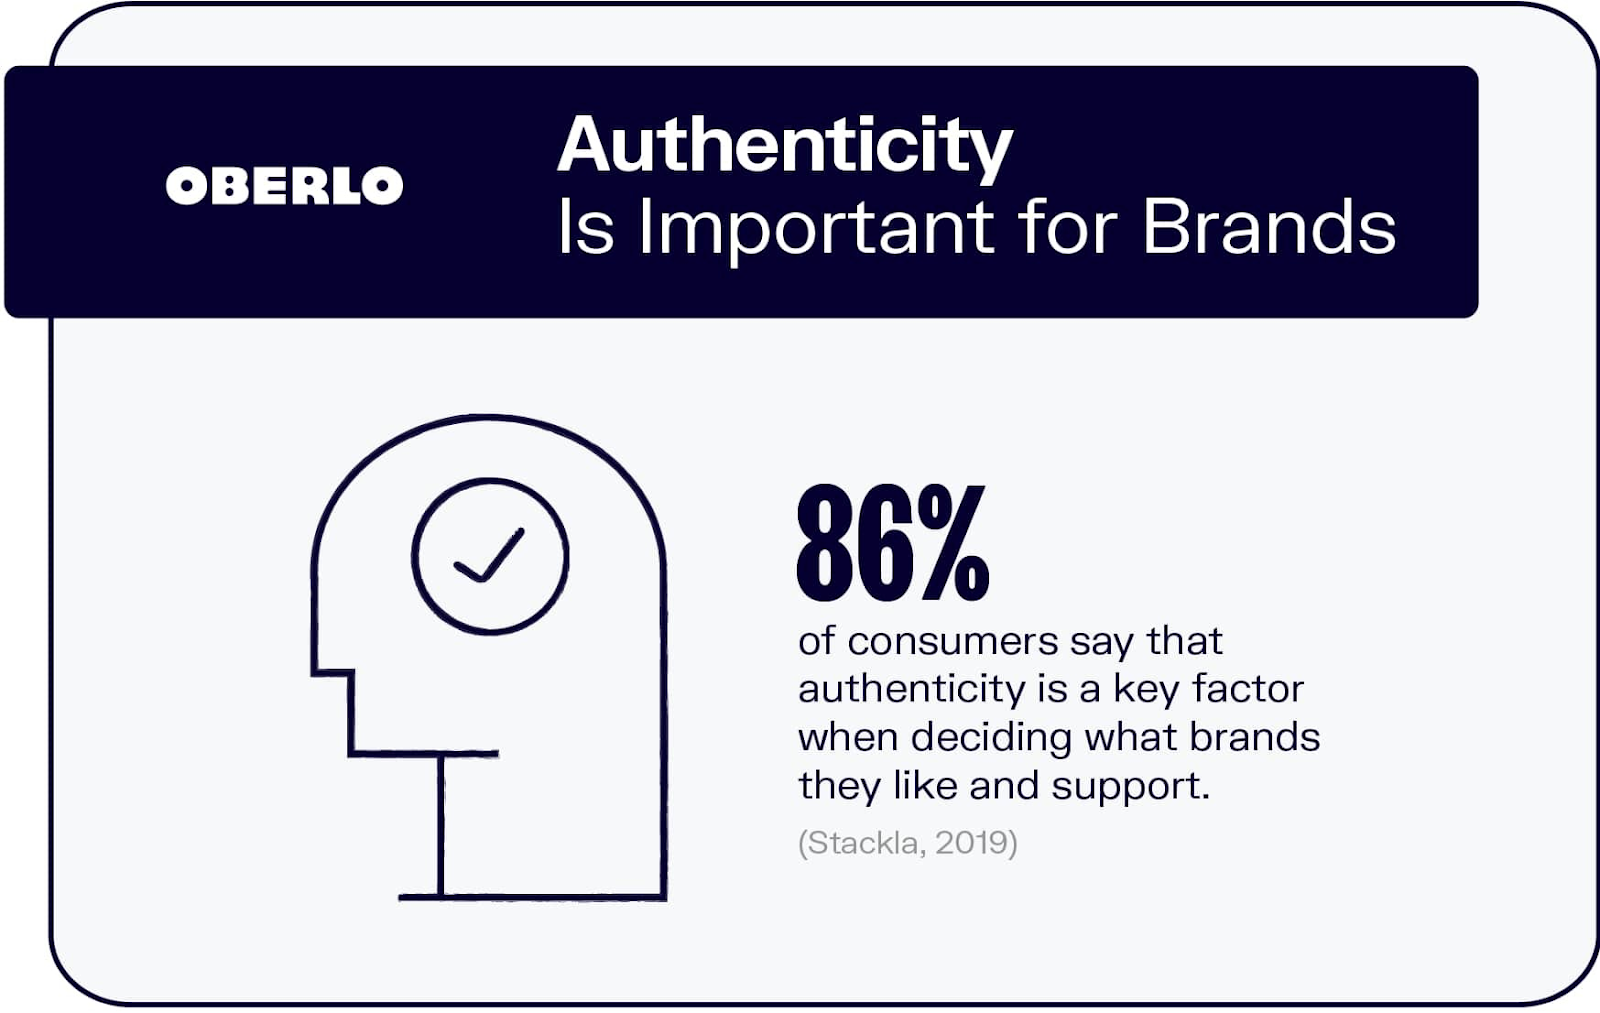 Authenticity is Important for Brands